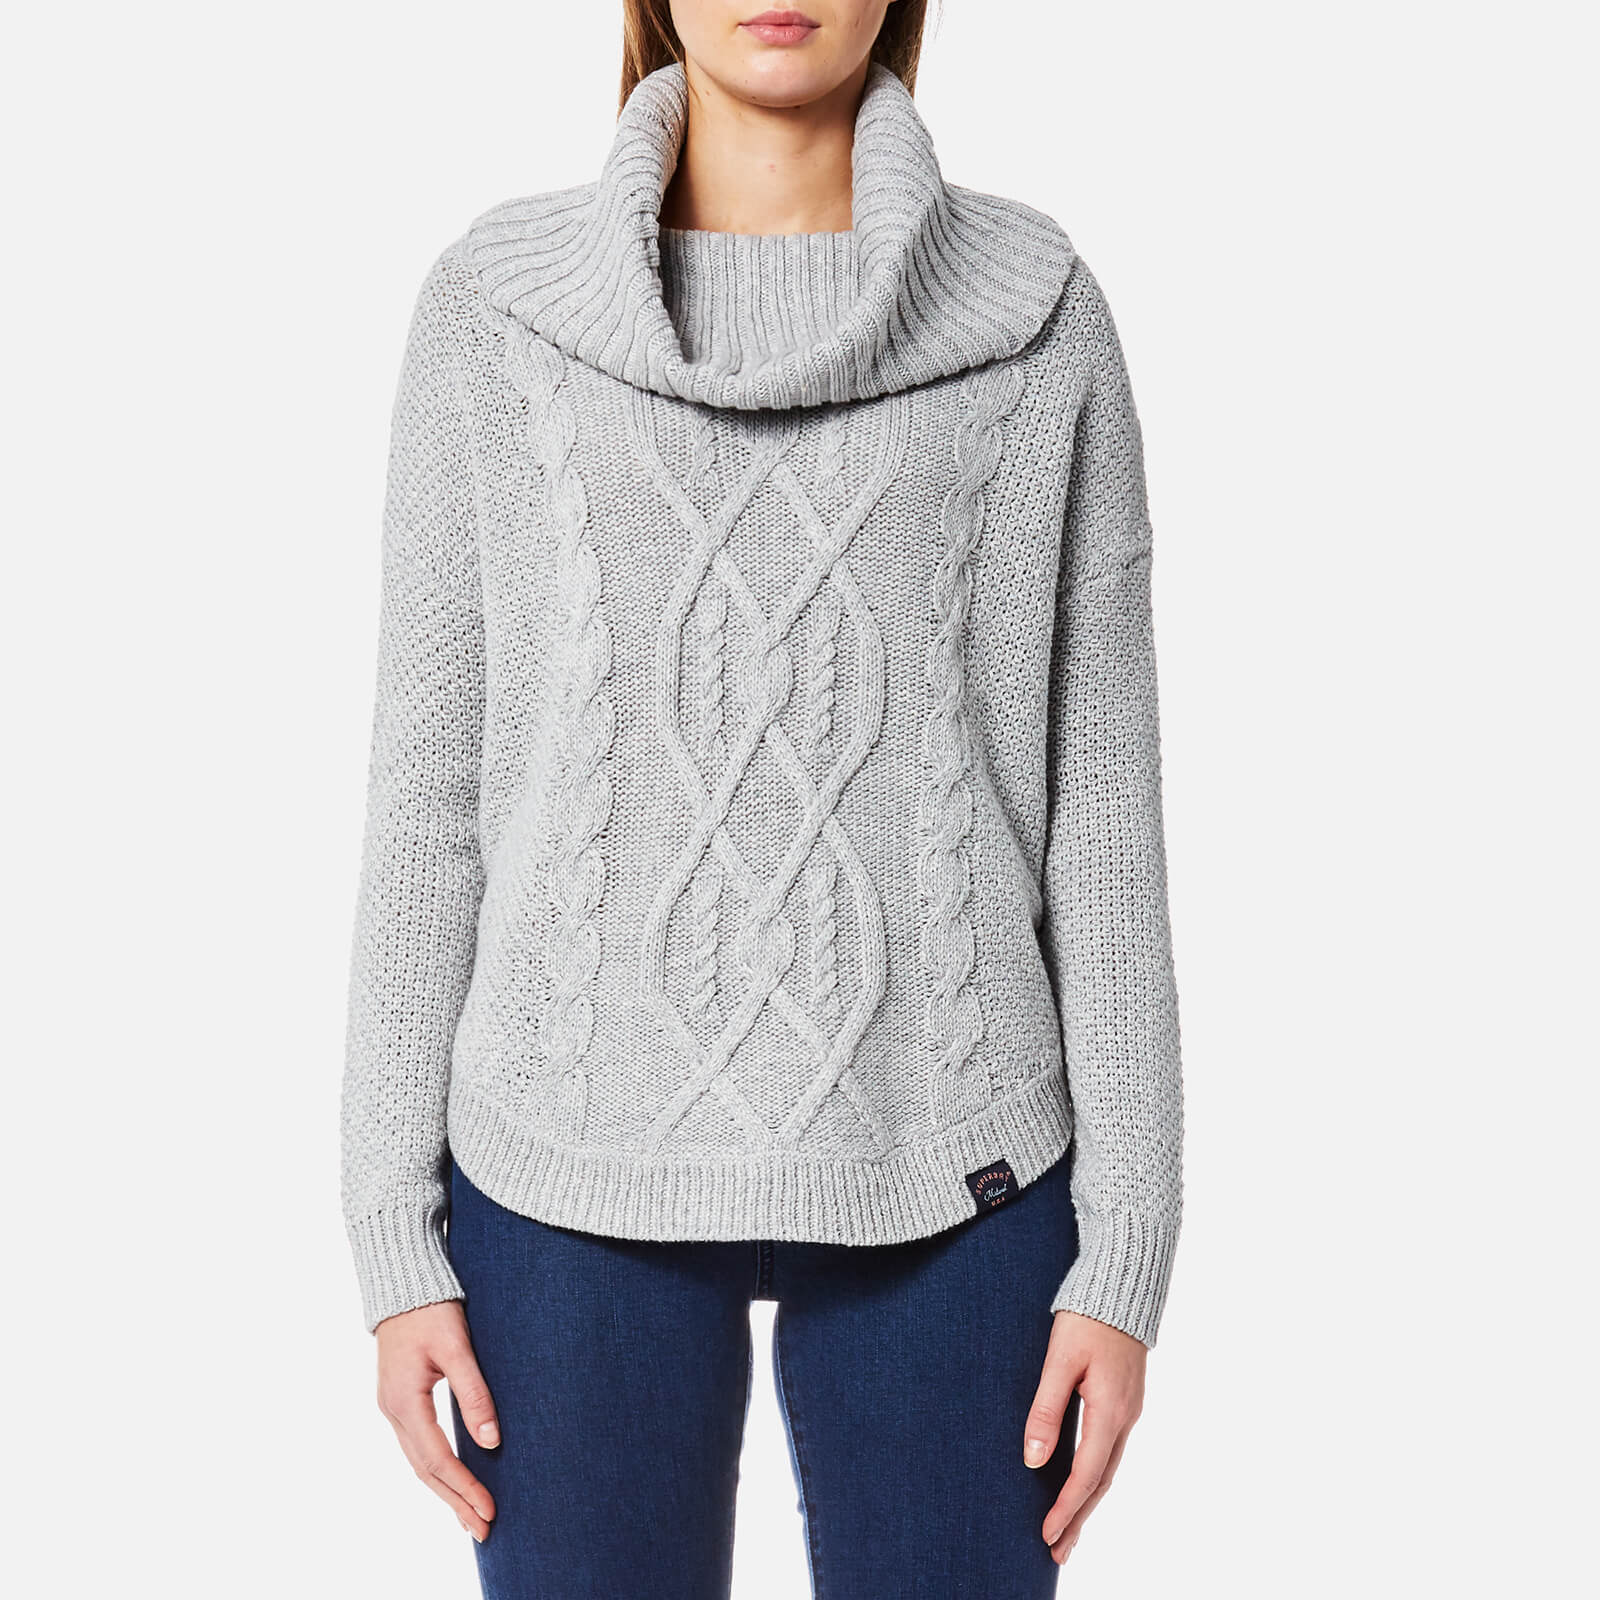 21ec8b65ce9f Superdry Women s Lia Cable Cowl Neck Jumper - Grey Marl Womens Clothing